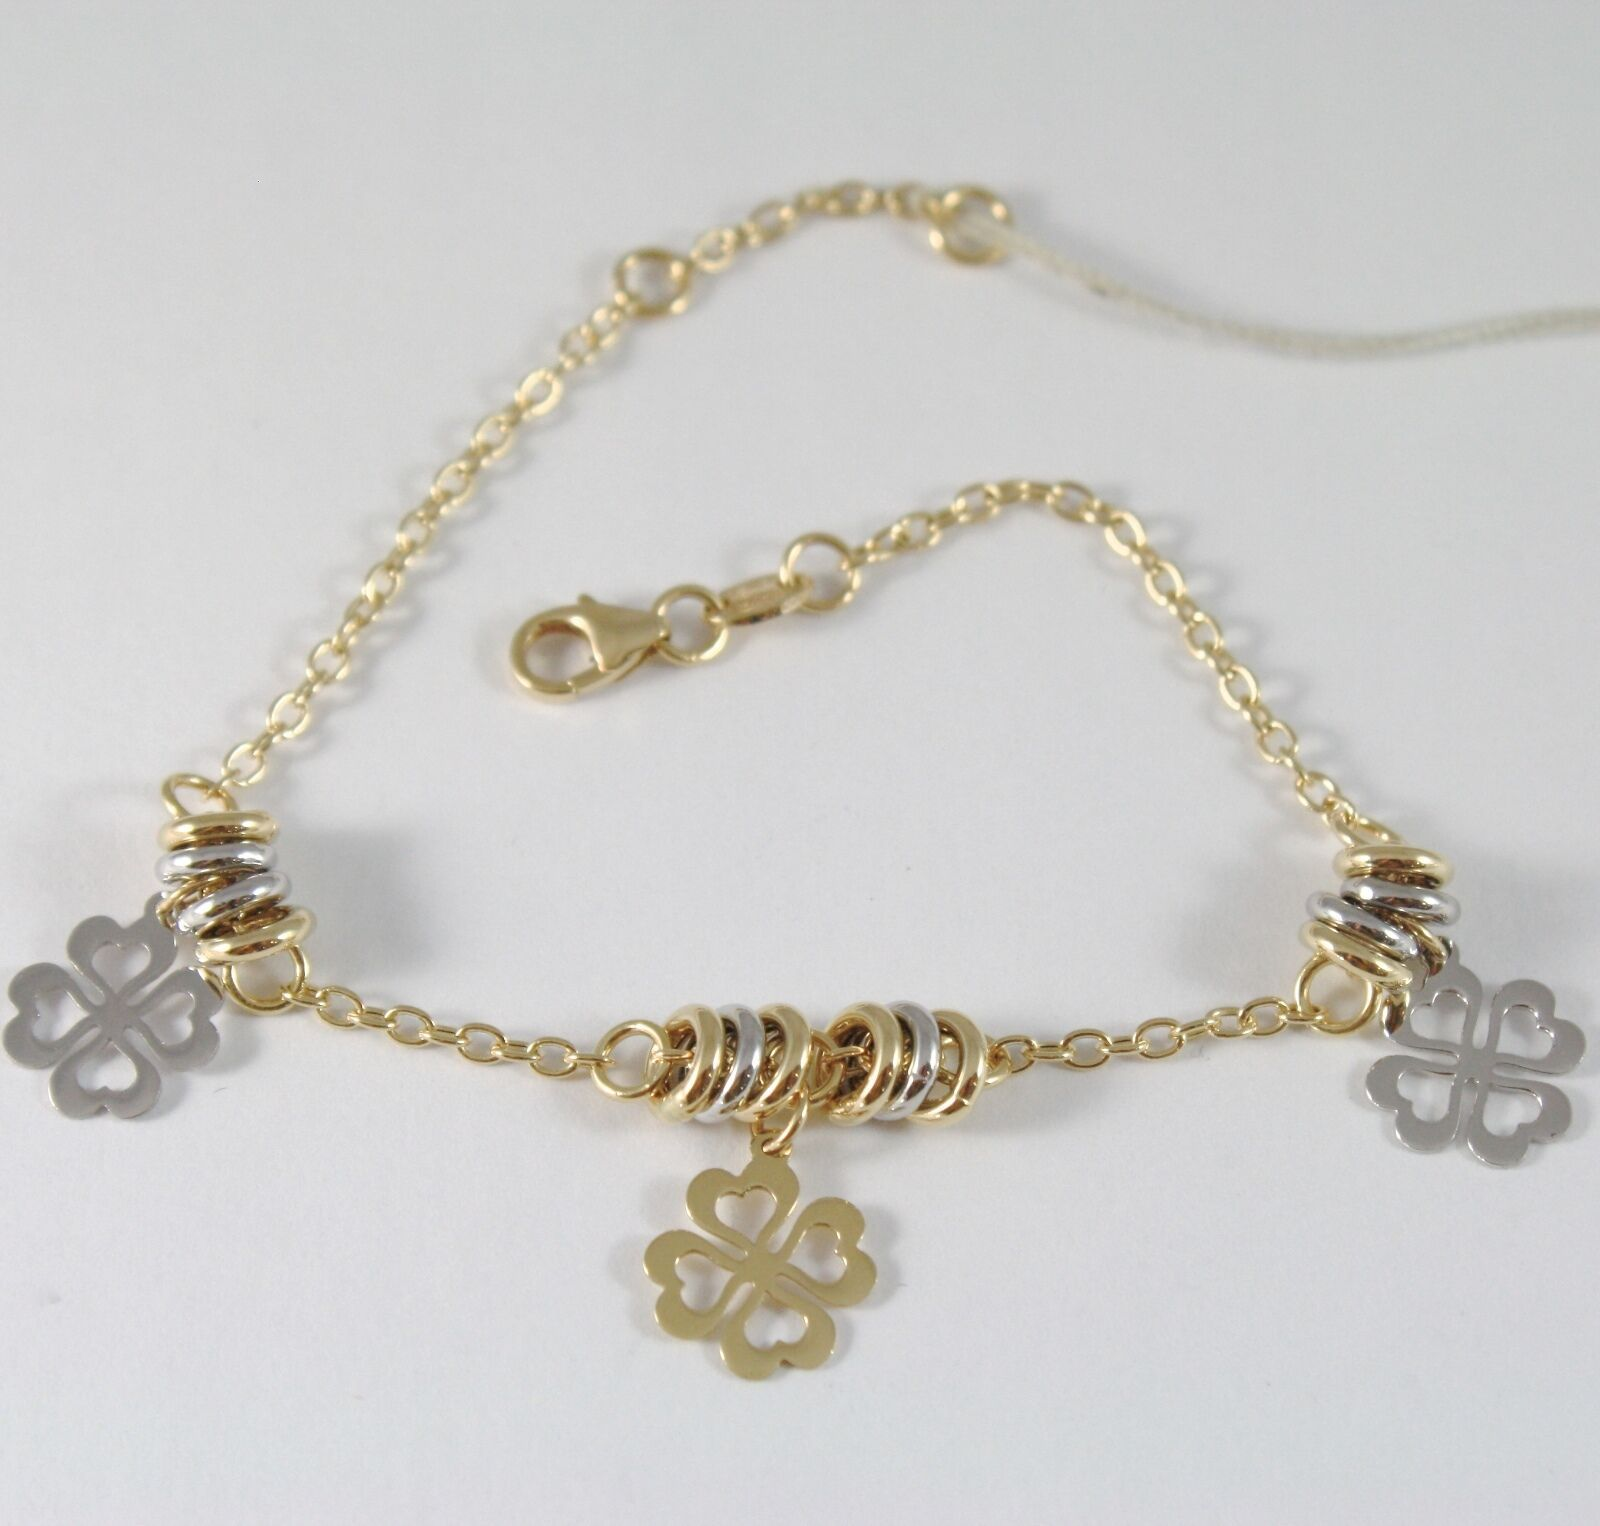 Bracelet in Yellow Gold White 750 18K with Circles, Leaf Clover Pendants 19 CM